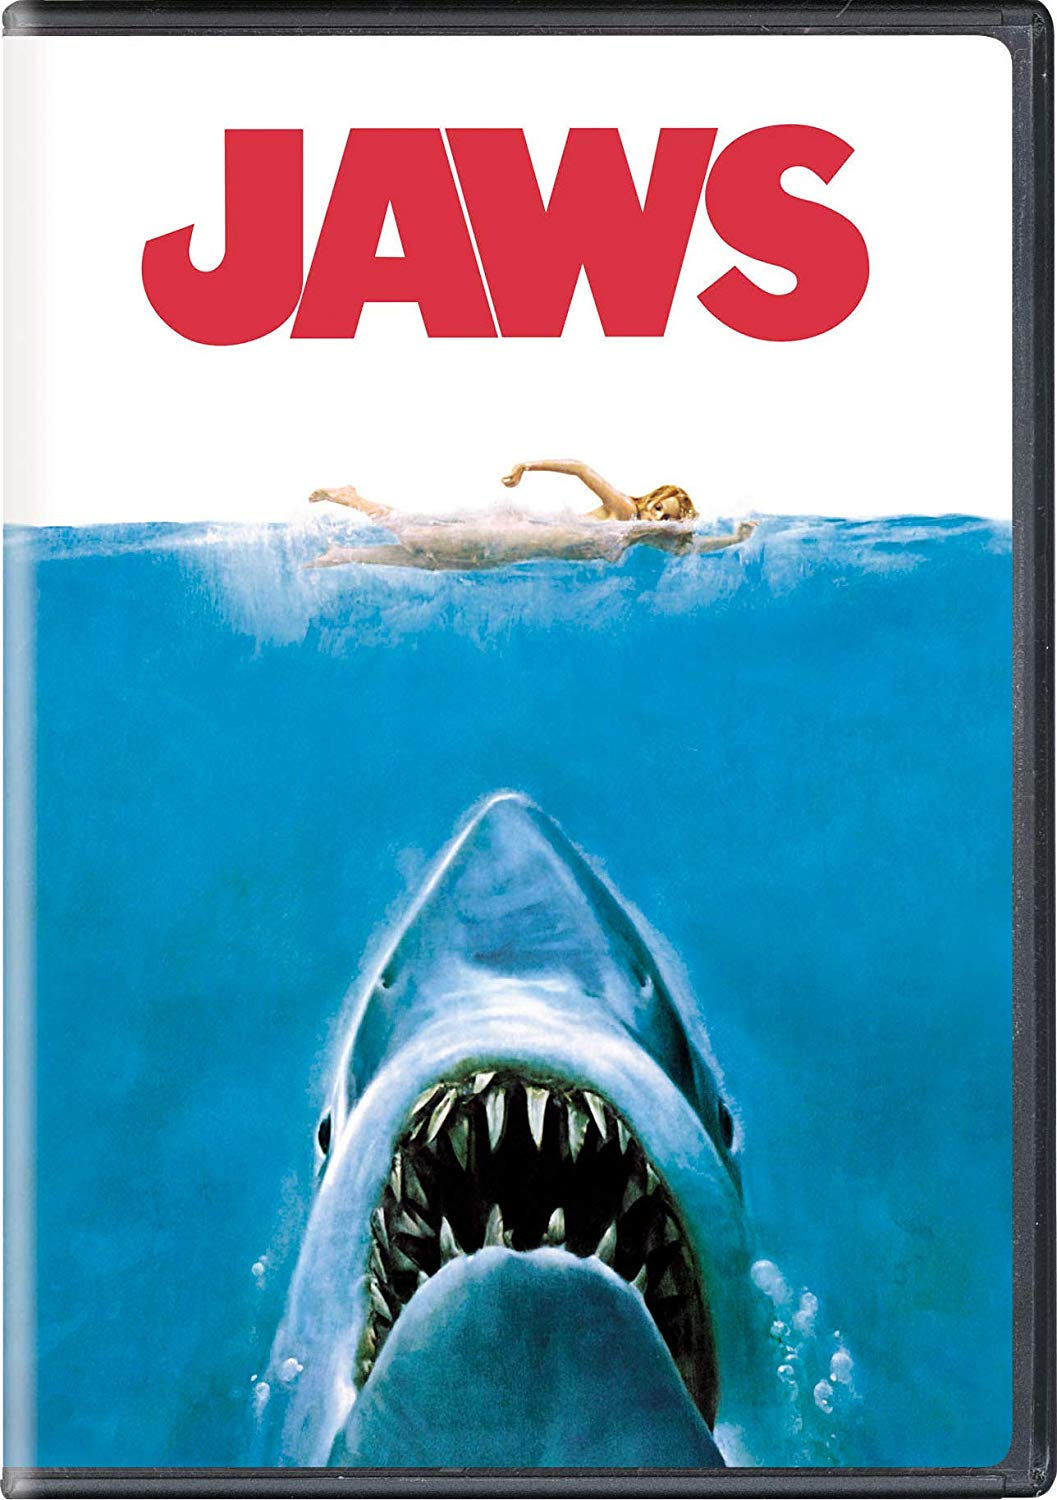 Jaws is one of the most popular Steven Spielberg's film as well as one of the best